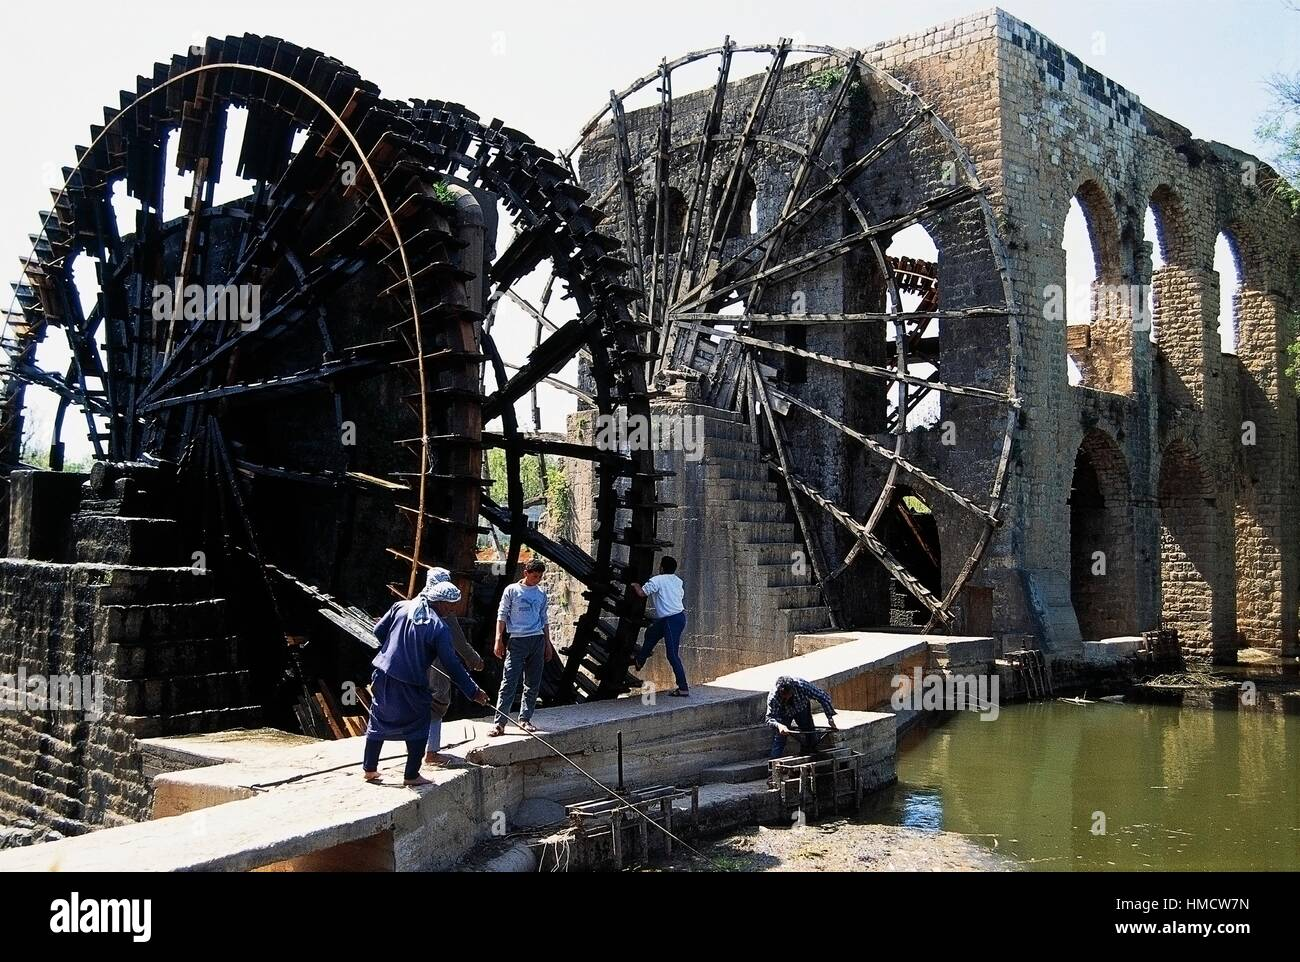 Men working in front of the noria, water wheels, on the Hama River, Haman, Syria. - Stock Image